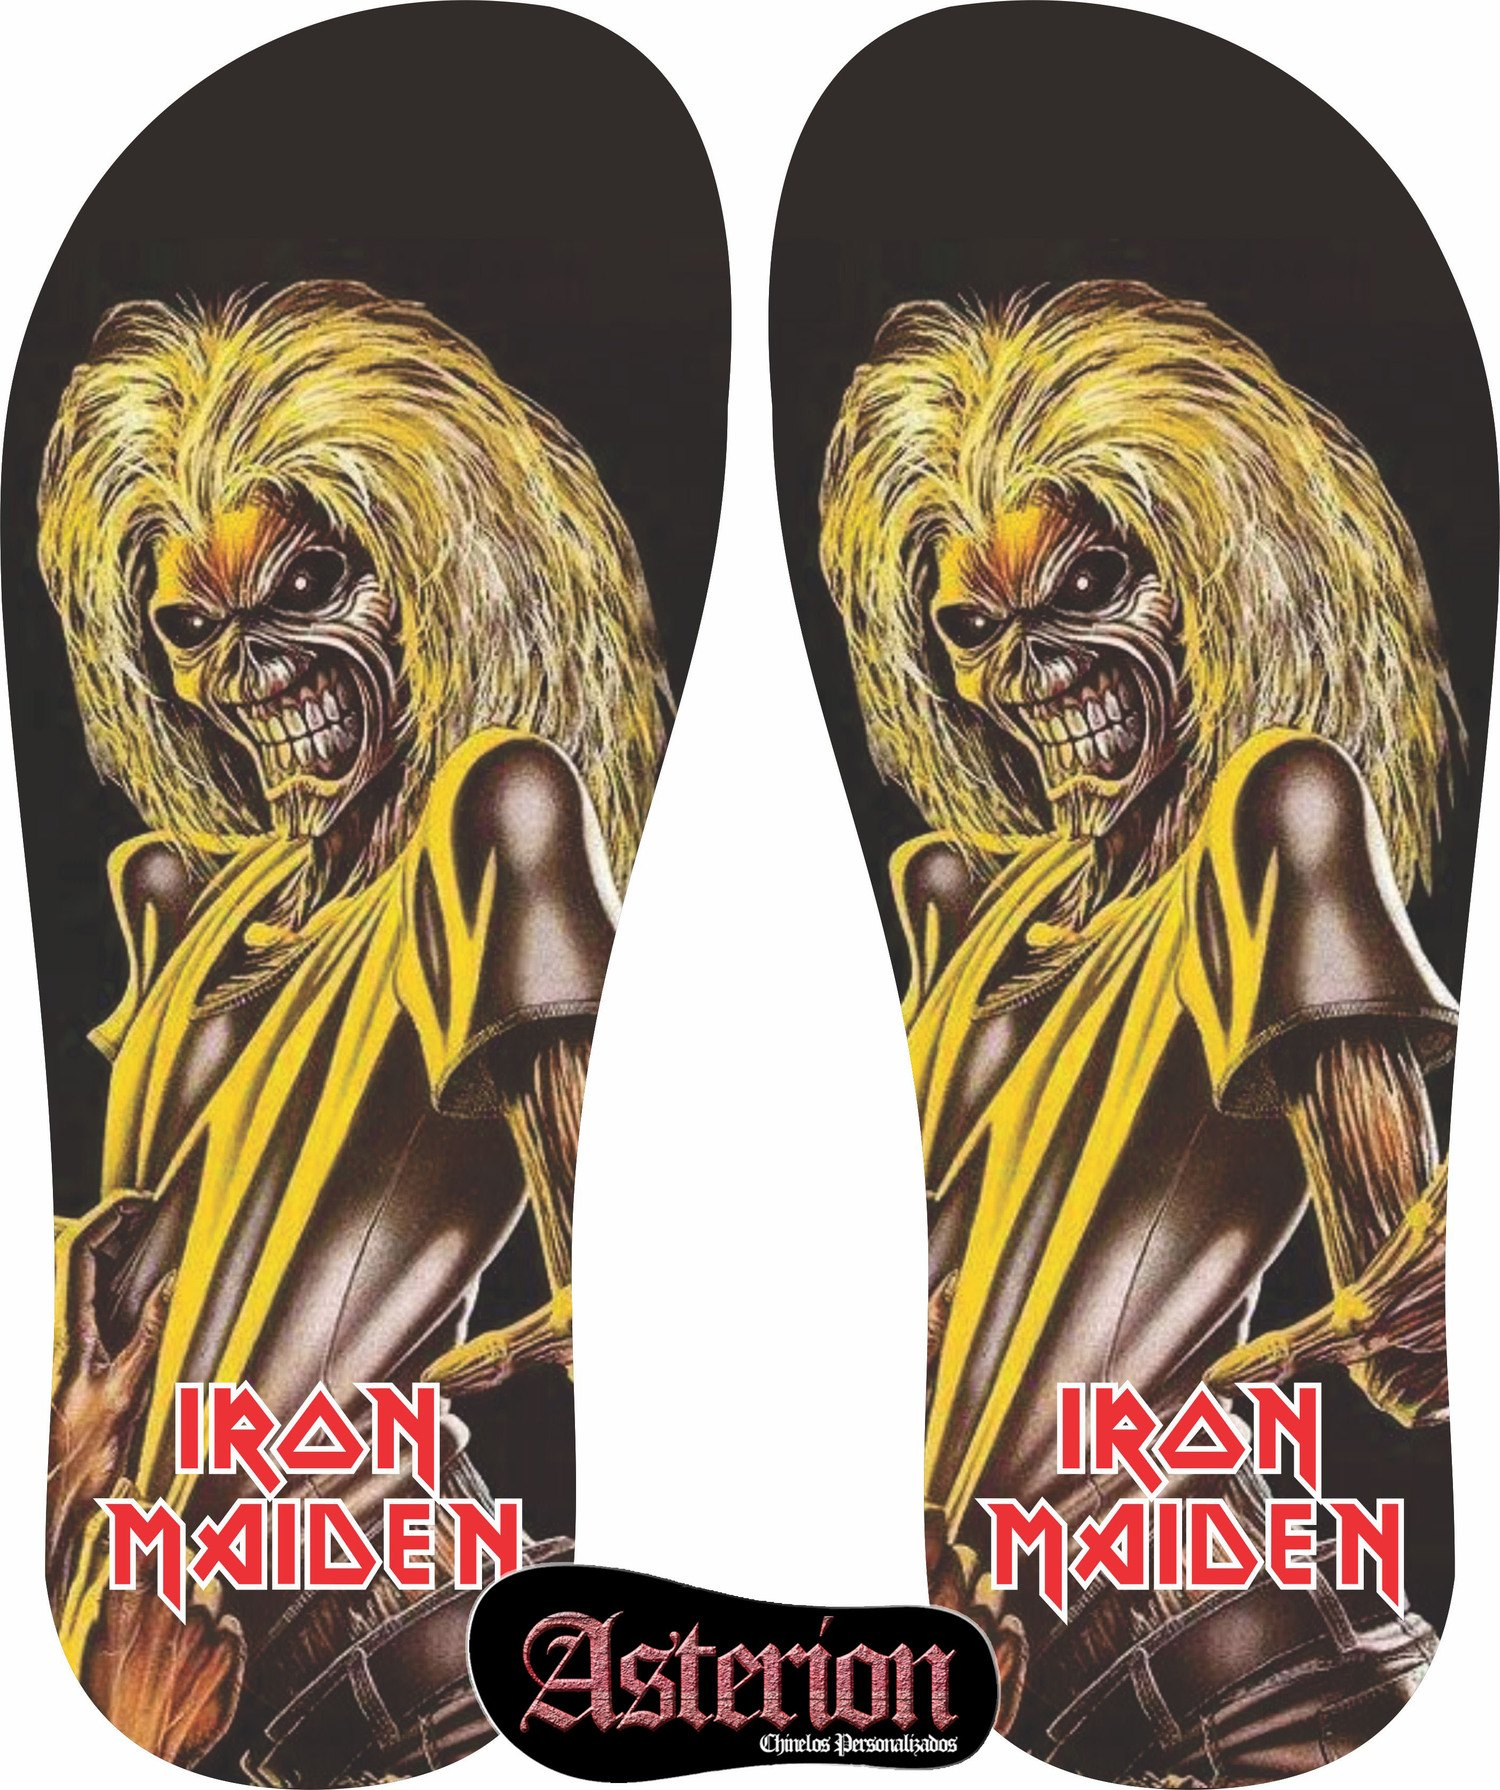 Chinelo Iron Maiden – Asterion Chinelos Personalizados